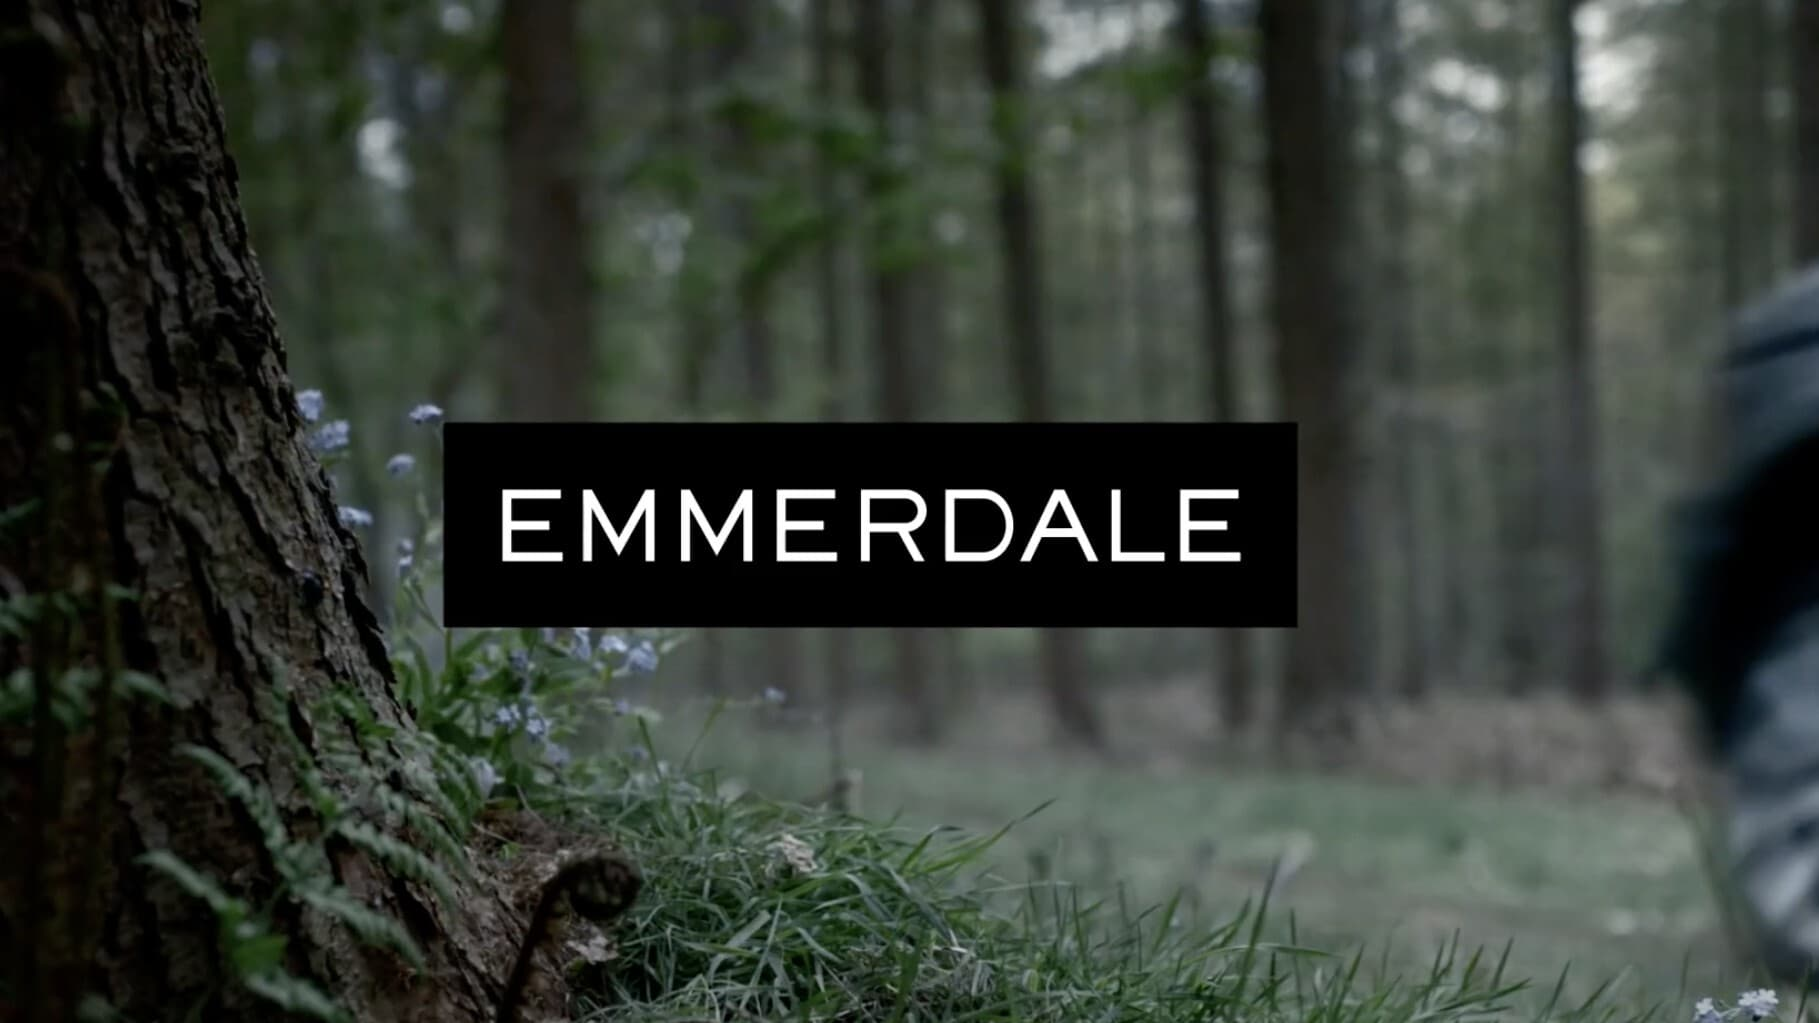 Emmerdale - Season 46 Episode 205 : Monday 12th August 2019